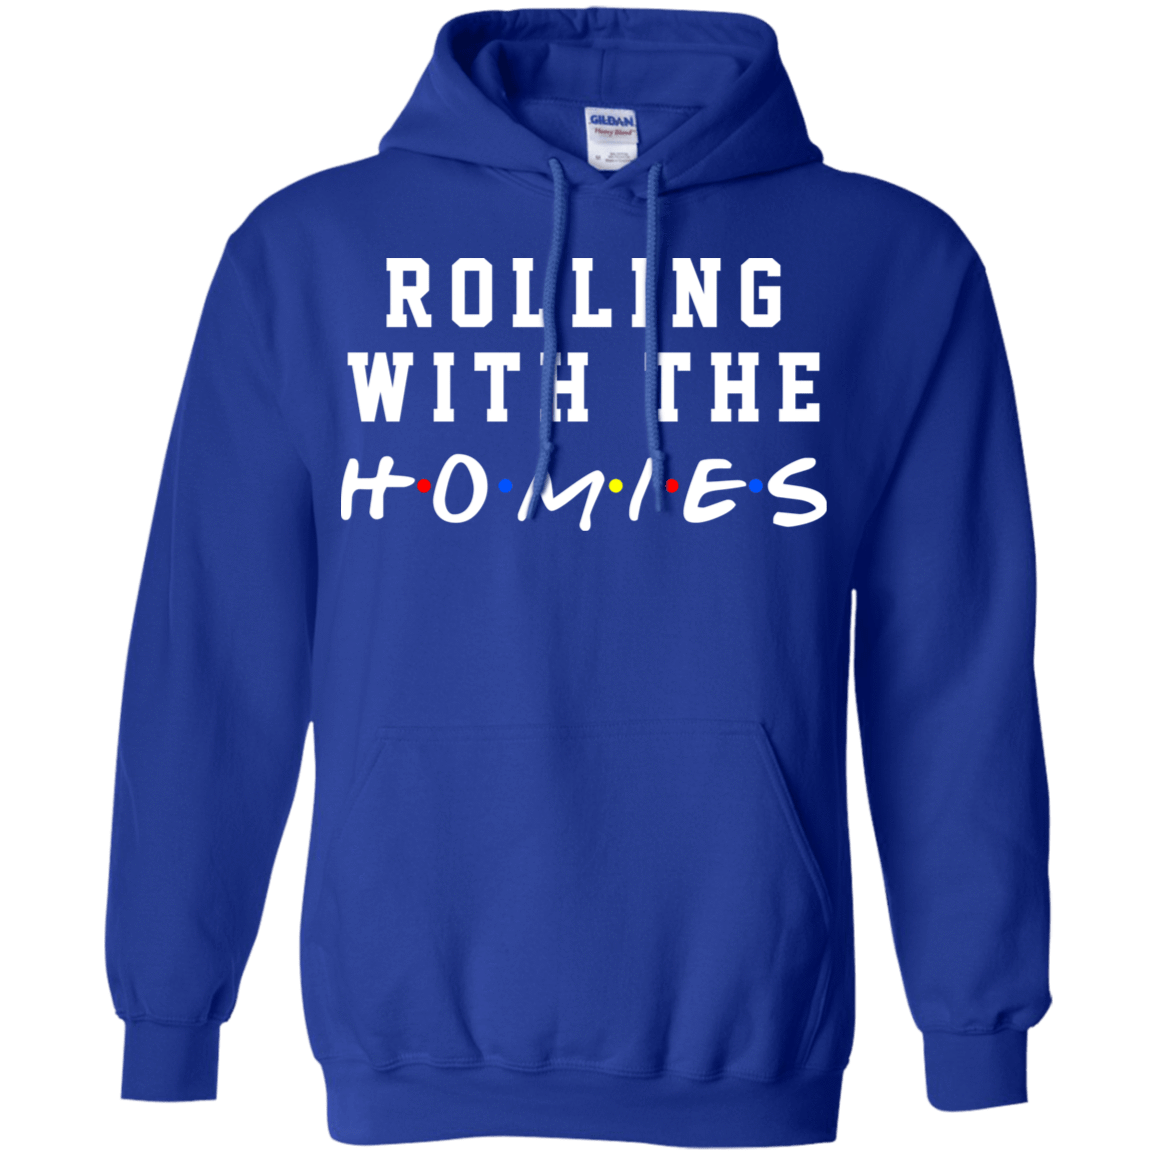 Rolling With The Homies T-Shirts, Hoodie, Tank 541-4765-77675123-23175 - Tee Ript